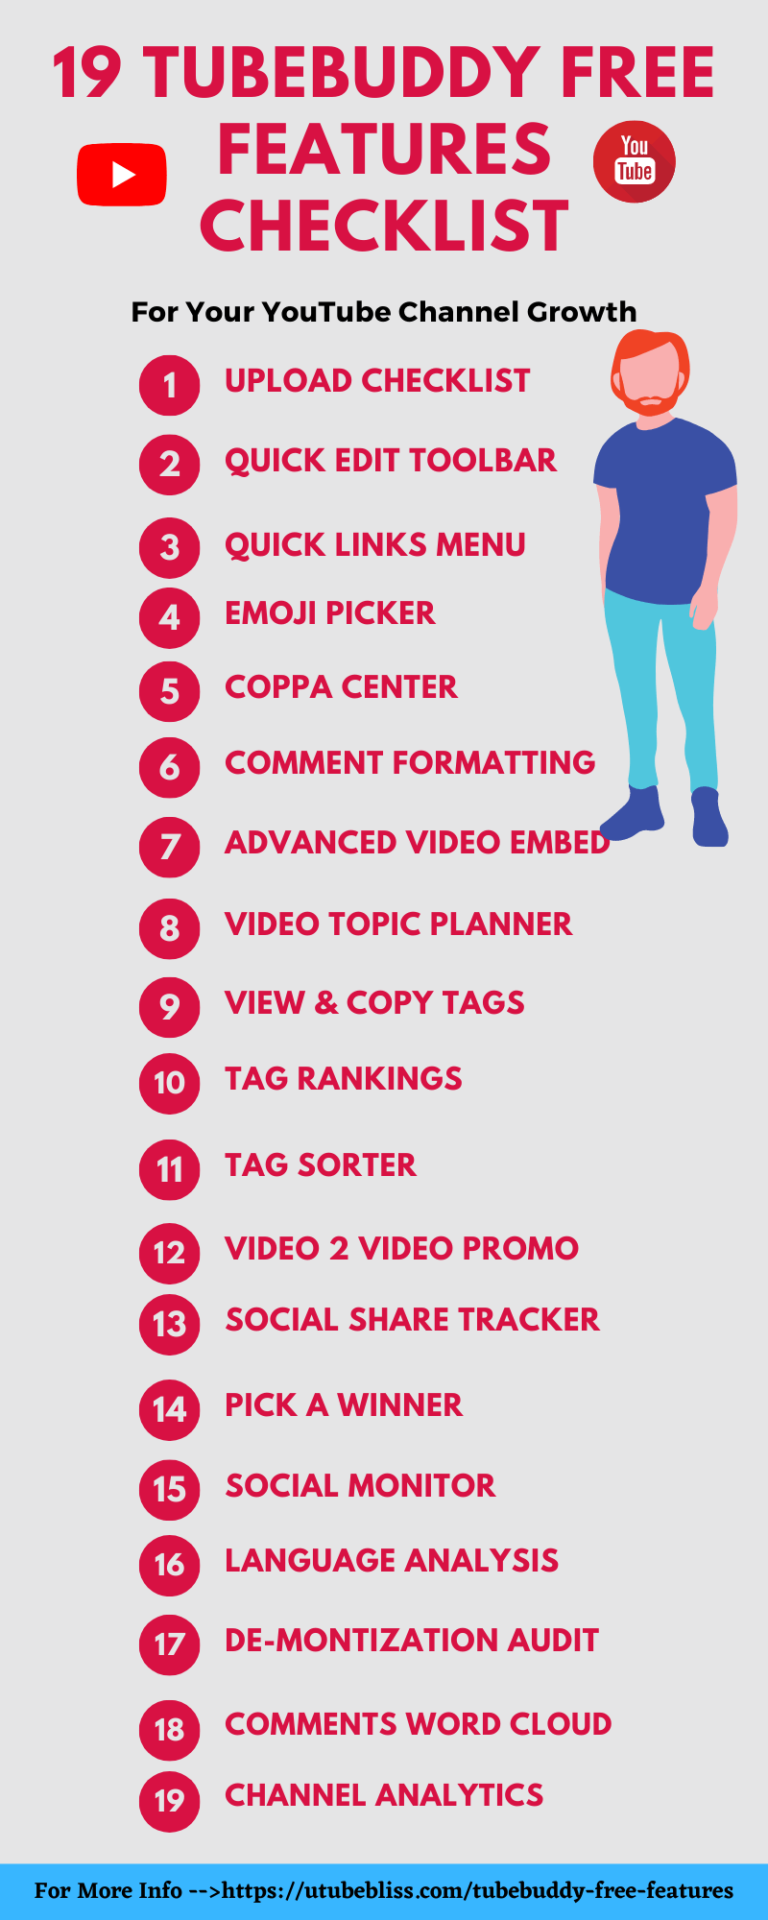 19 TubeBuddy free features checklist img